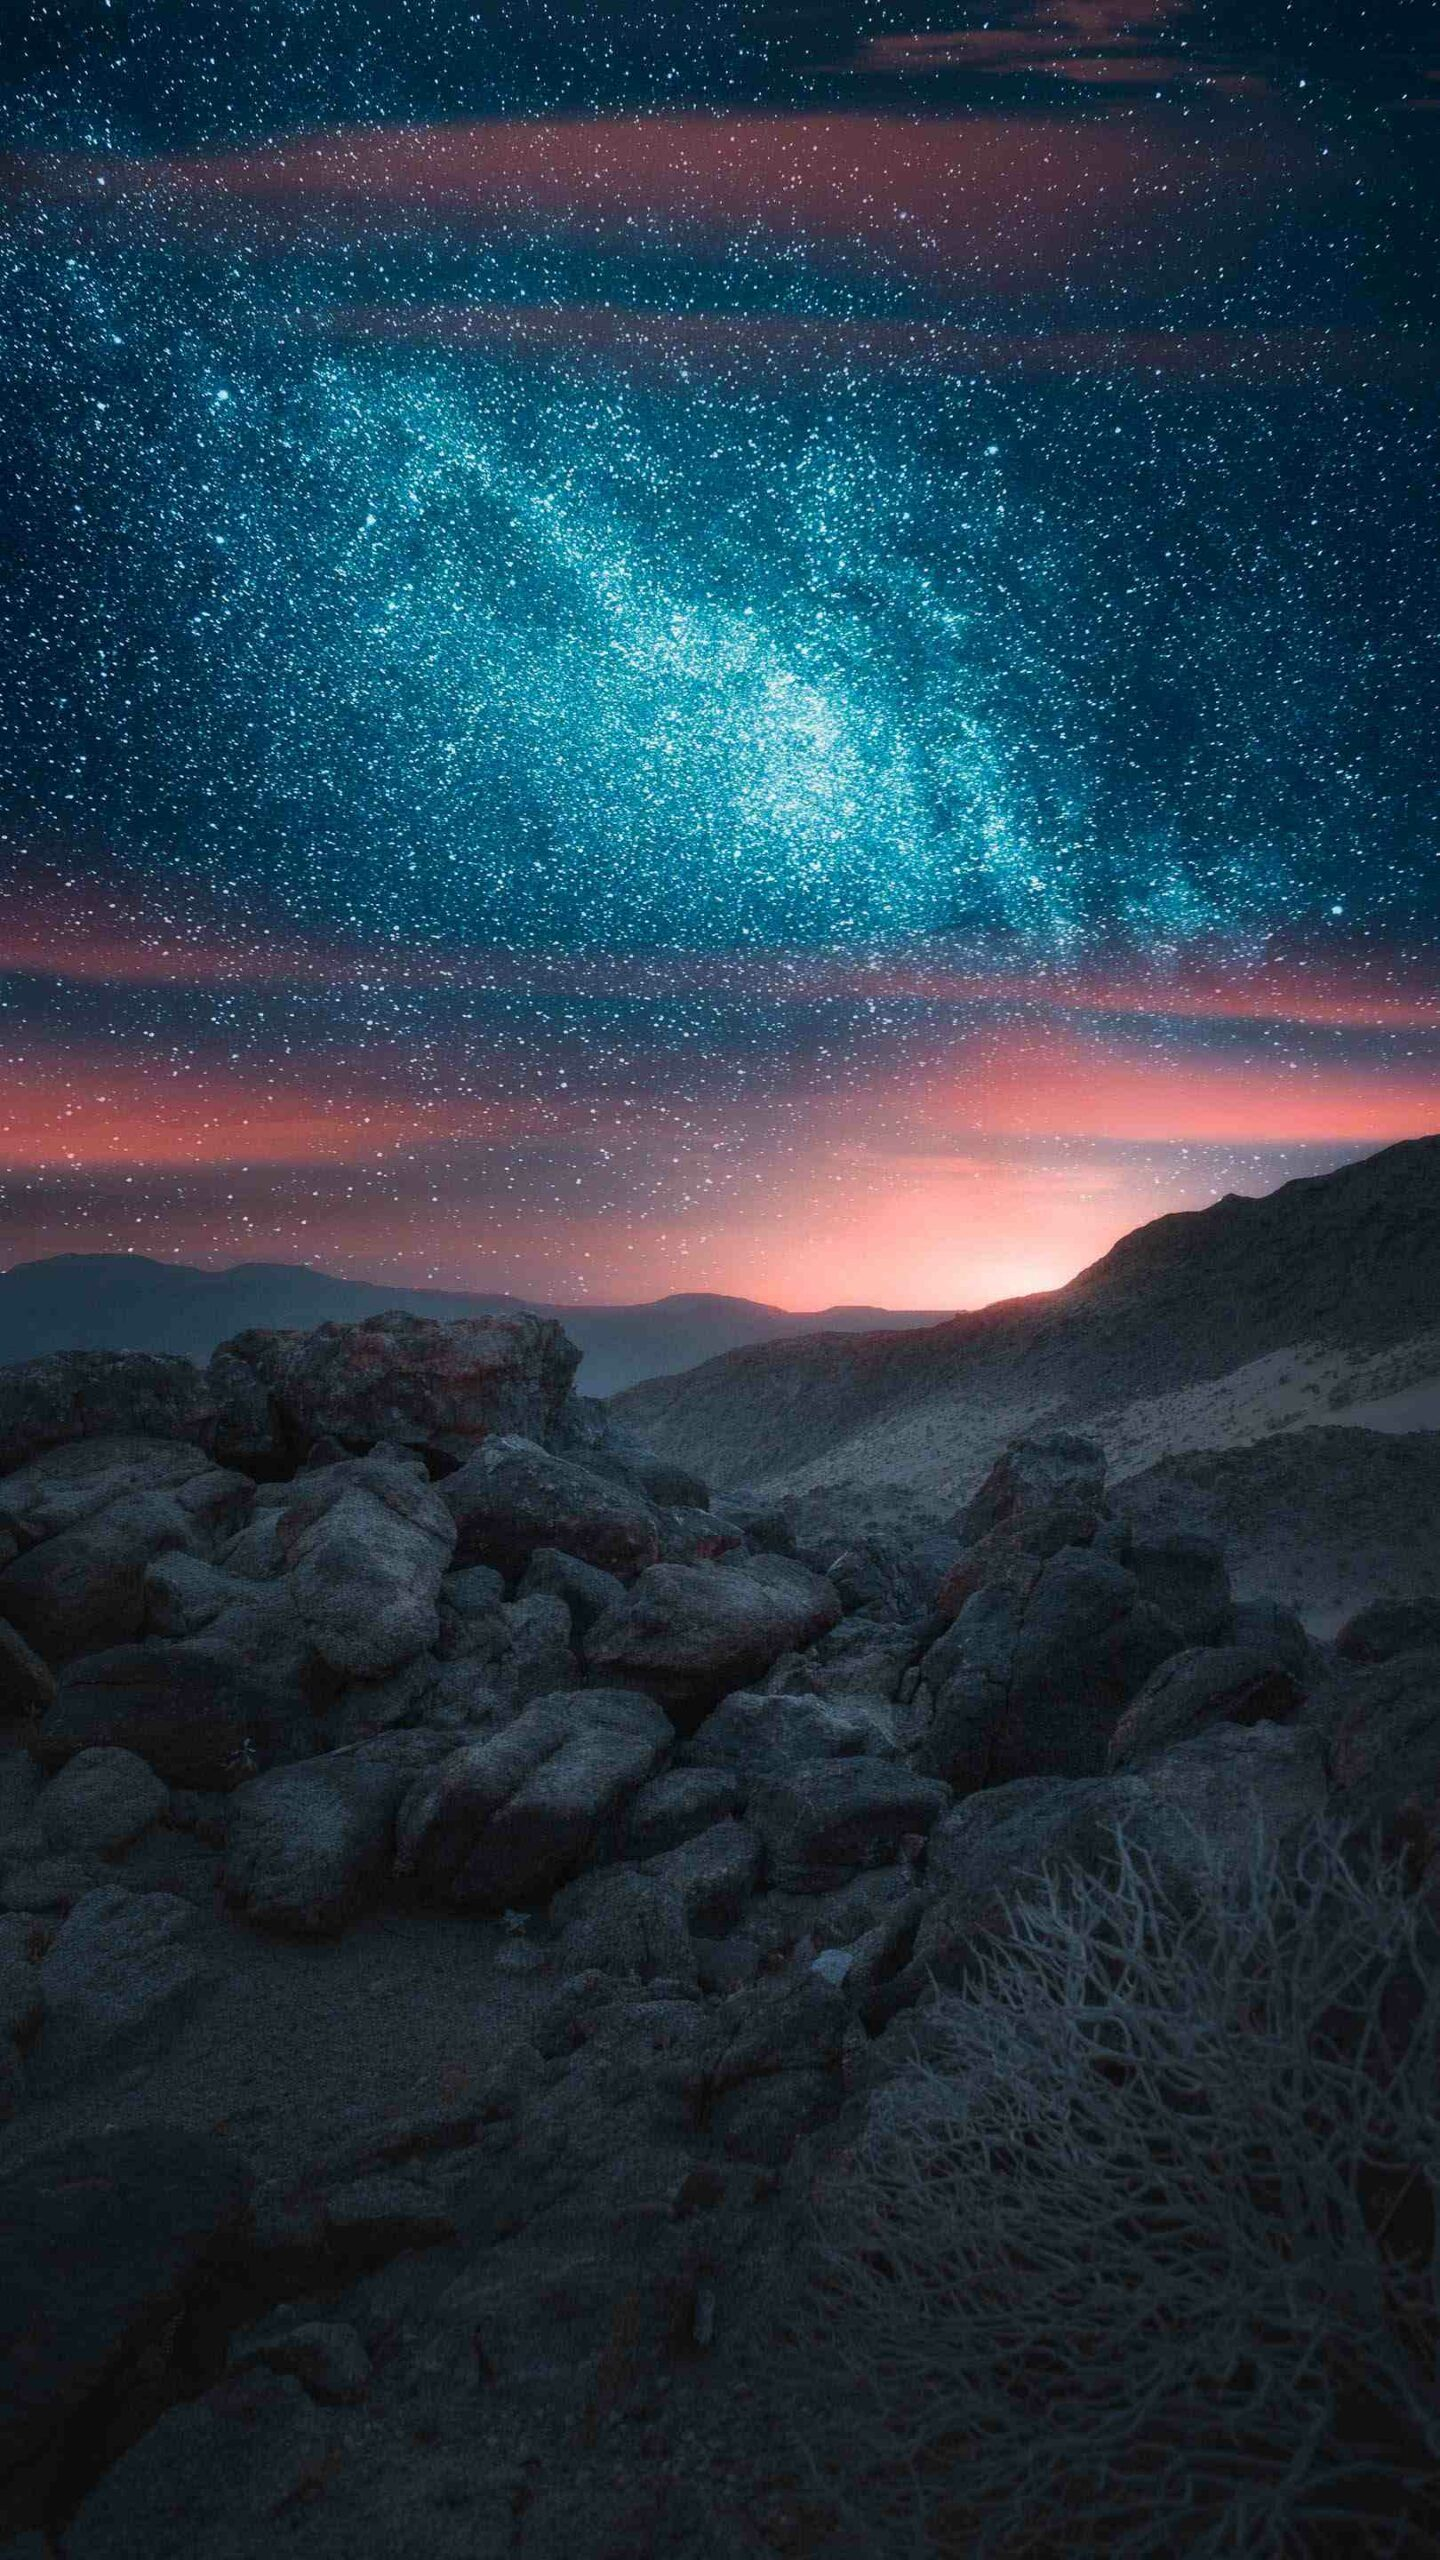 Glimpse Into The Unknown Iphone Wallpaper In 2020 Iphone Backgrounds Nature Starry Night Picture Hd Wallpaper Android